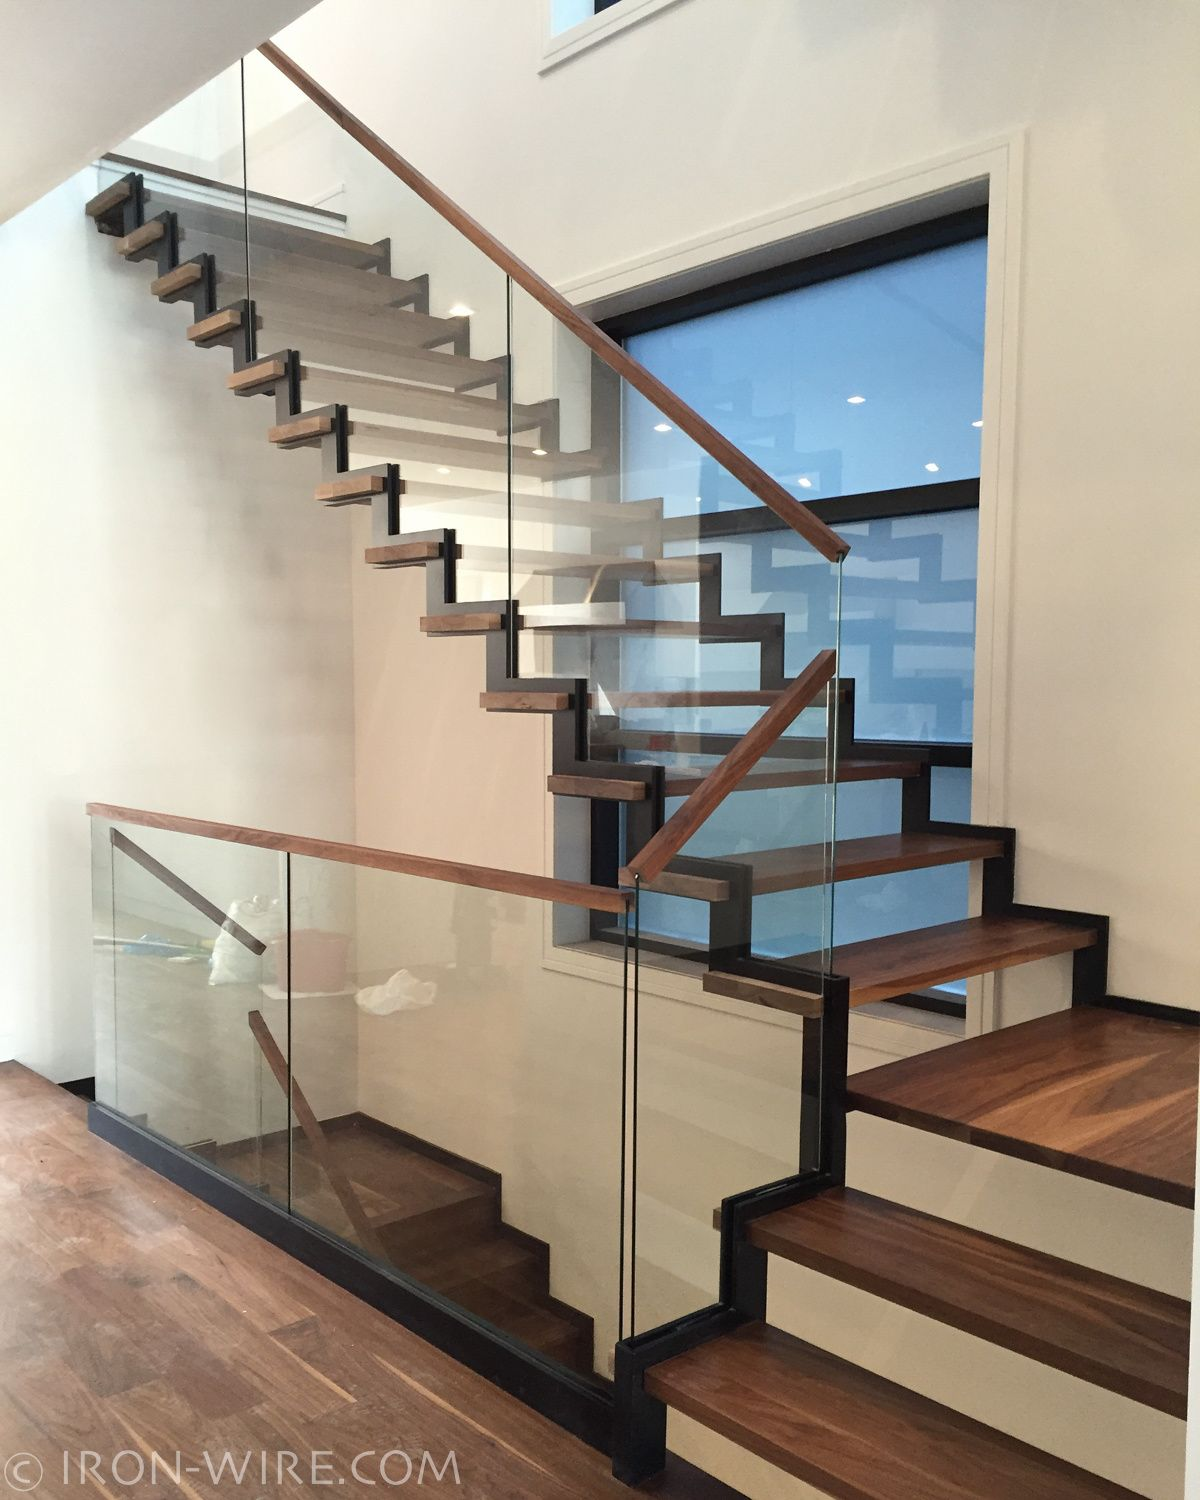 Stair Designs Railings Jam Stairs Amp Railing Designs: Pin By Darian Campise On New House